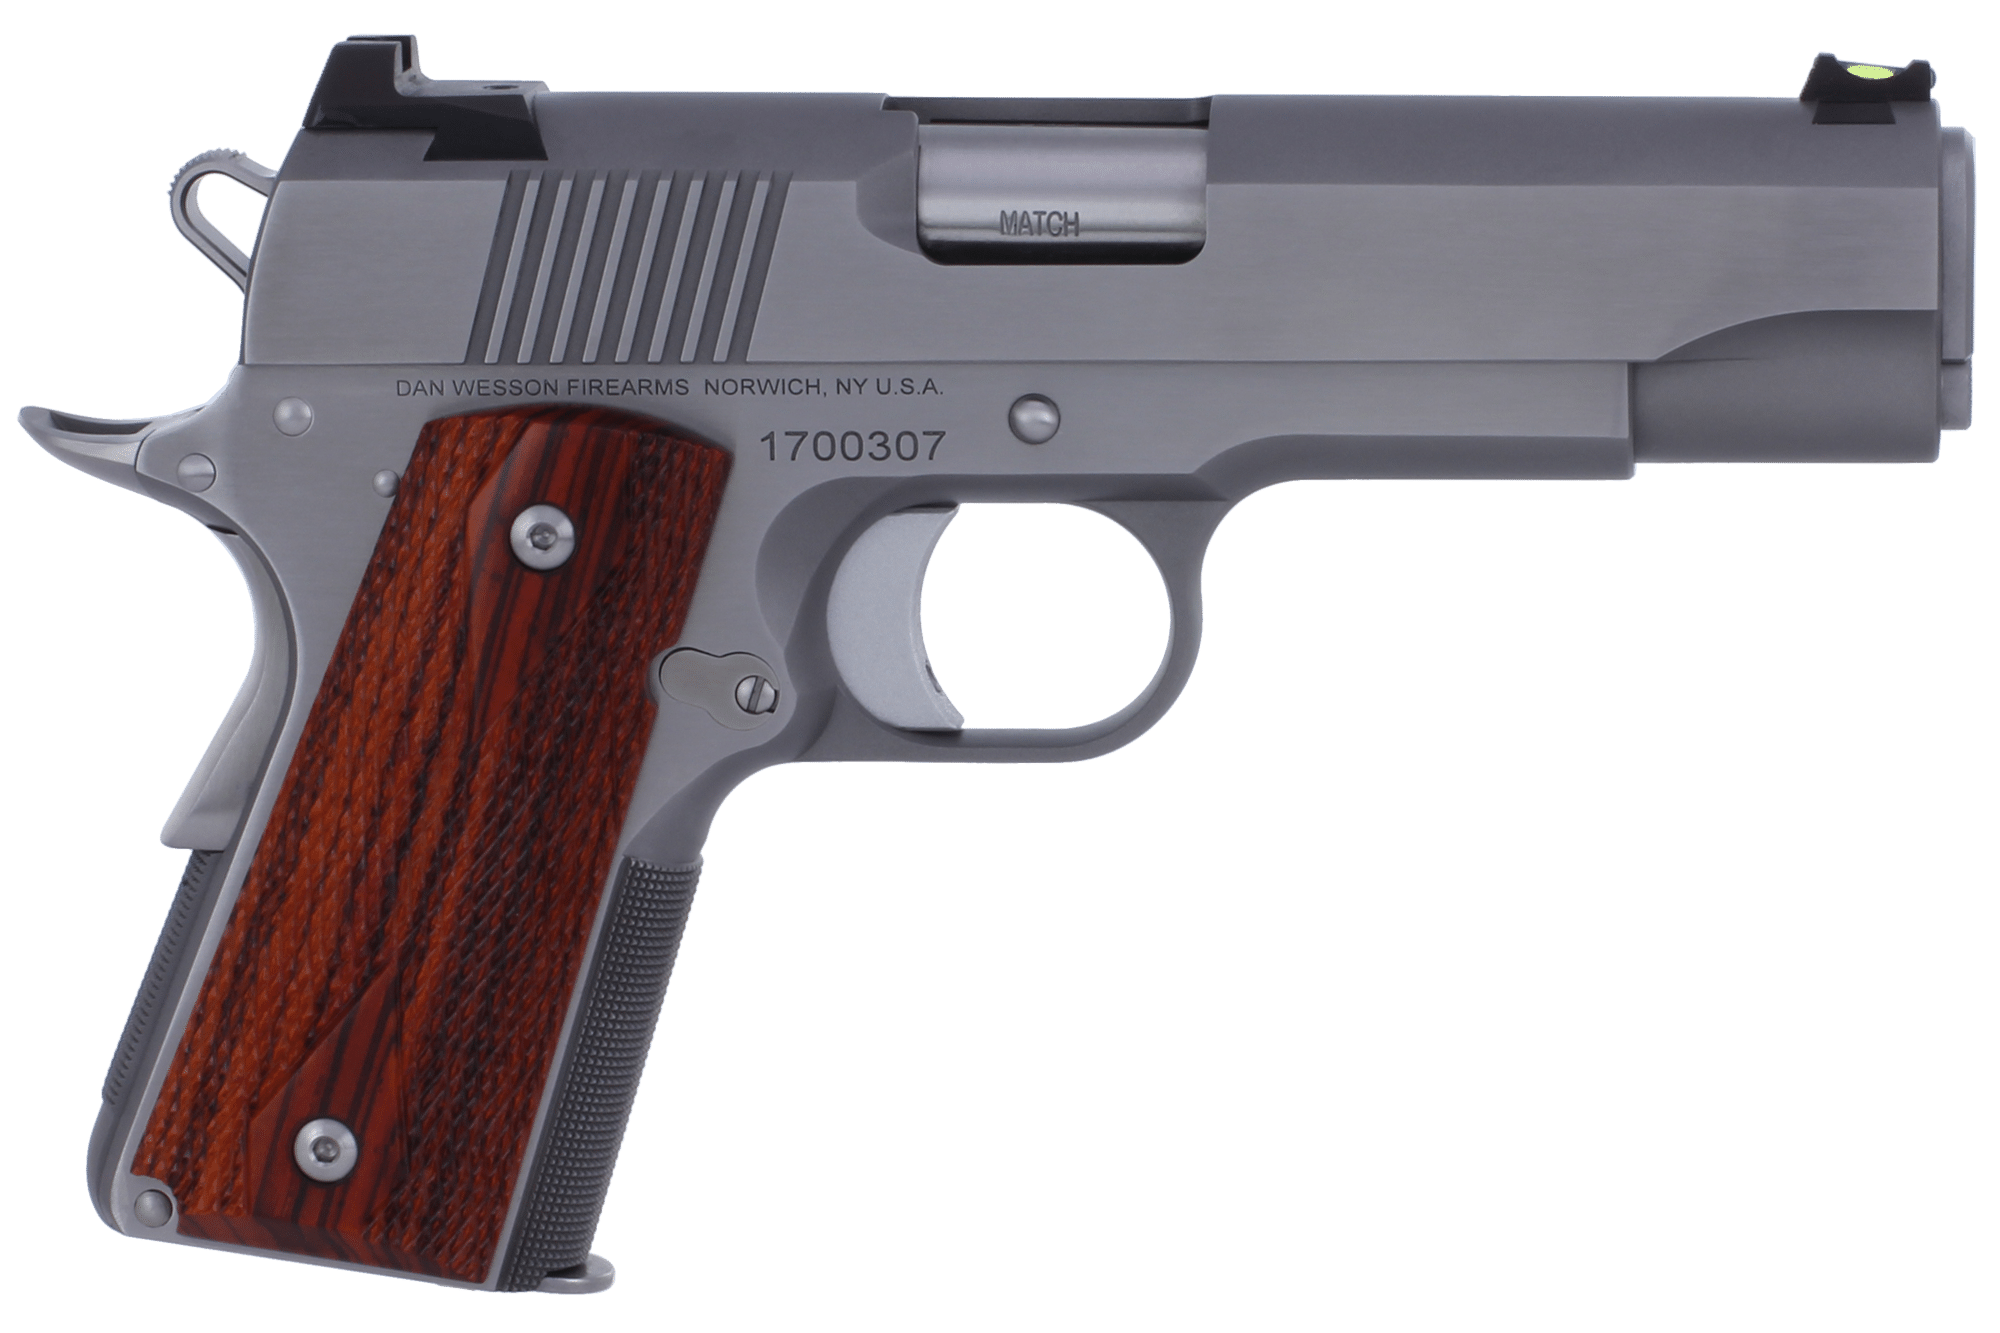 Dan Wesson 1911 Pointman Pistol - .45 ACP 7+1 - Wood/Stainless